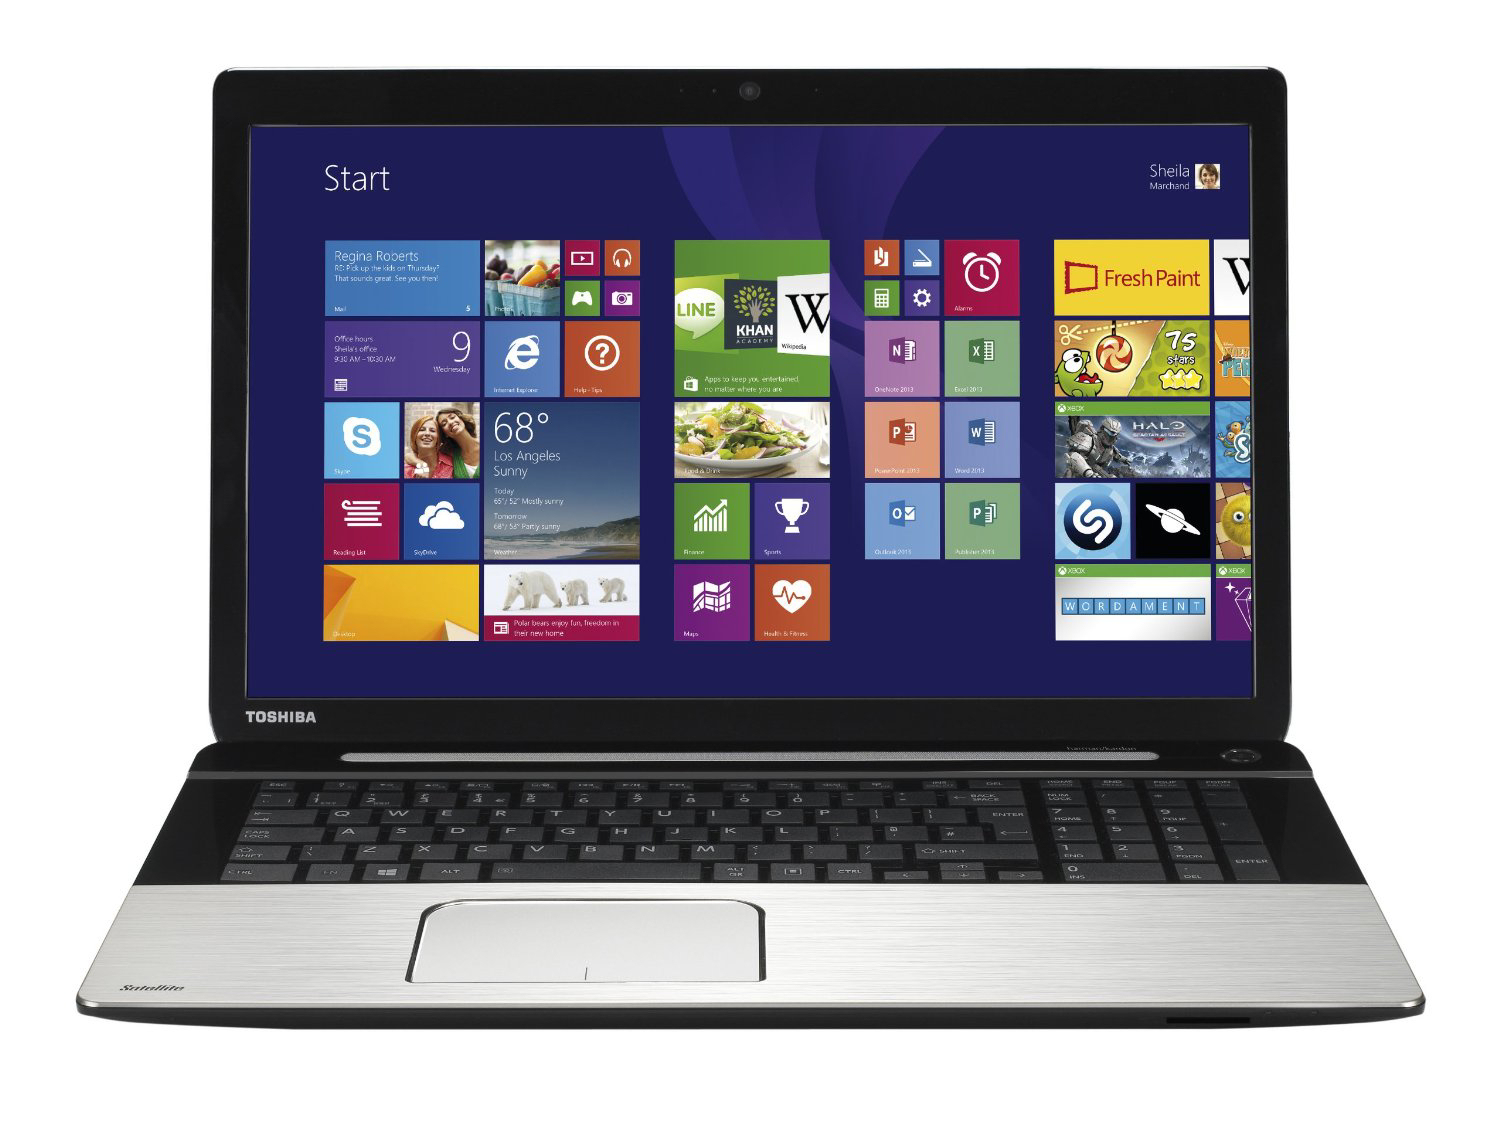 TOSHIBA SATELLITE S70-B SYSTEM DRIVERS FOR WINDOWS